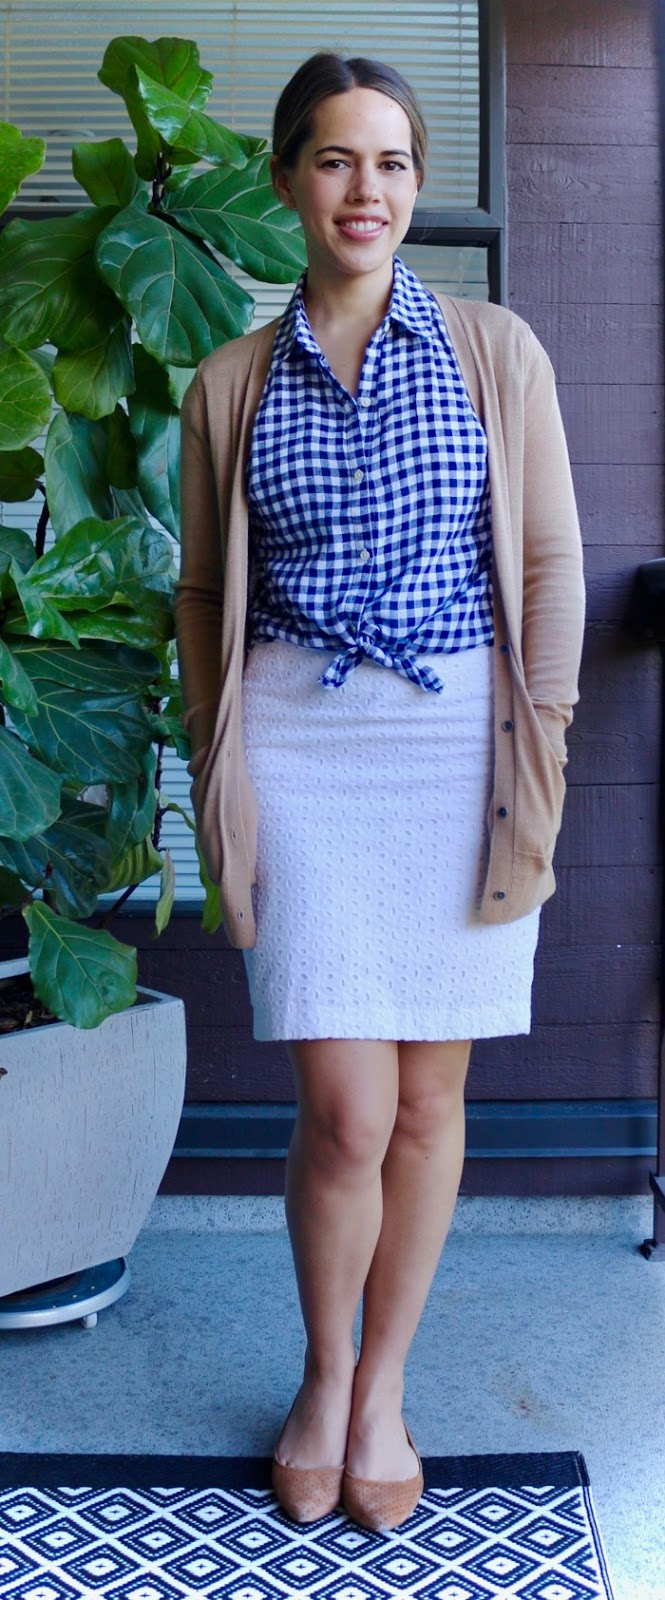 Jules in Flats - Gingham Tie-Front Top with White Eyelet Pencil Skirt